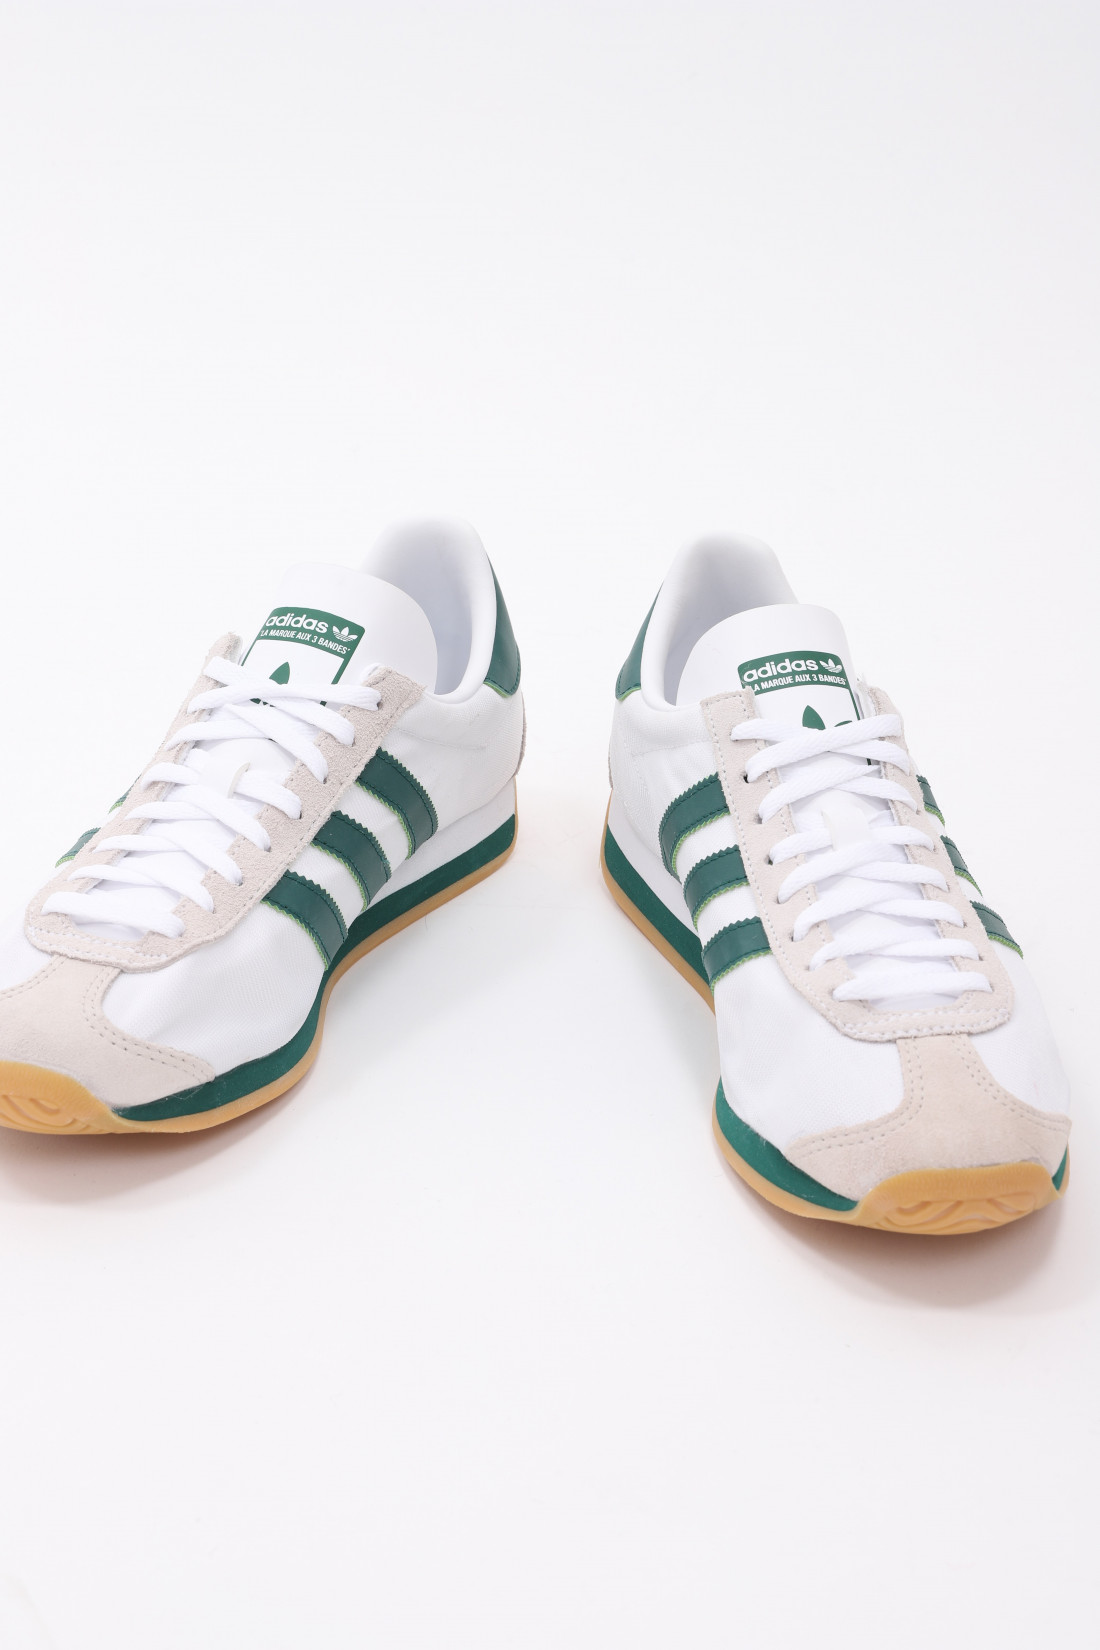 ADIDAS / Country og ee5745 White green